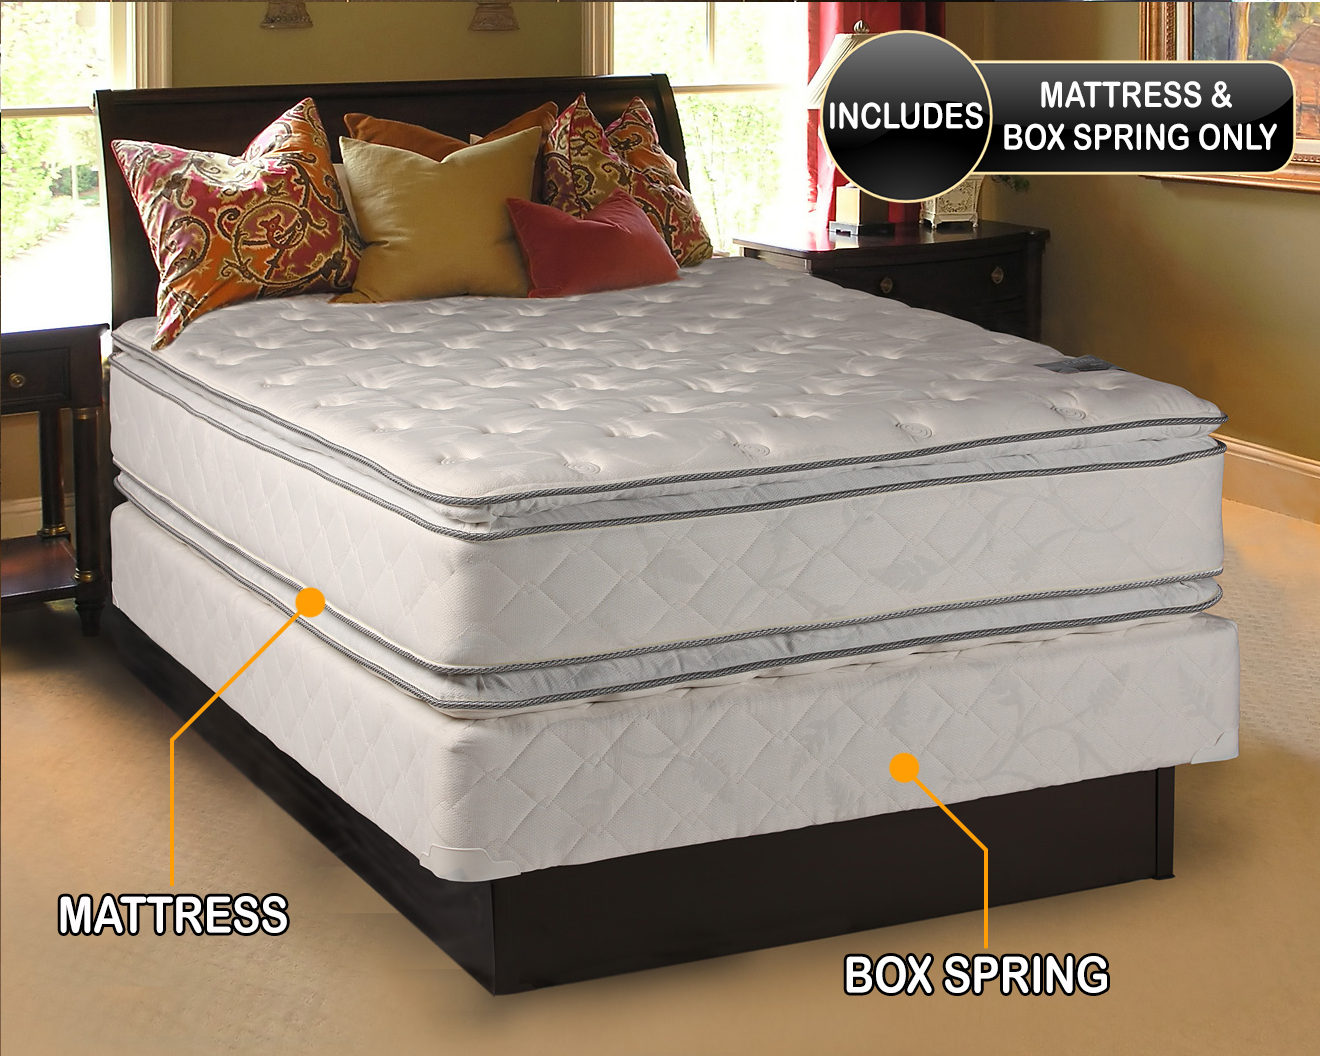 dream solutions pillow top mattress and box spring set full 54 x75 x12 double sided sleep system with enhanced cushion support fully assembled